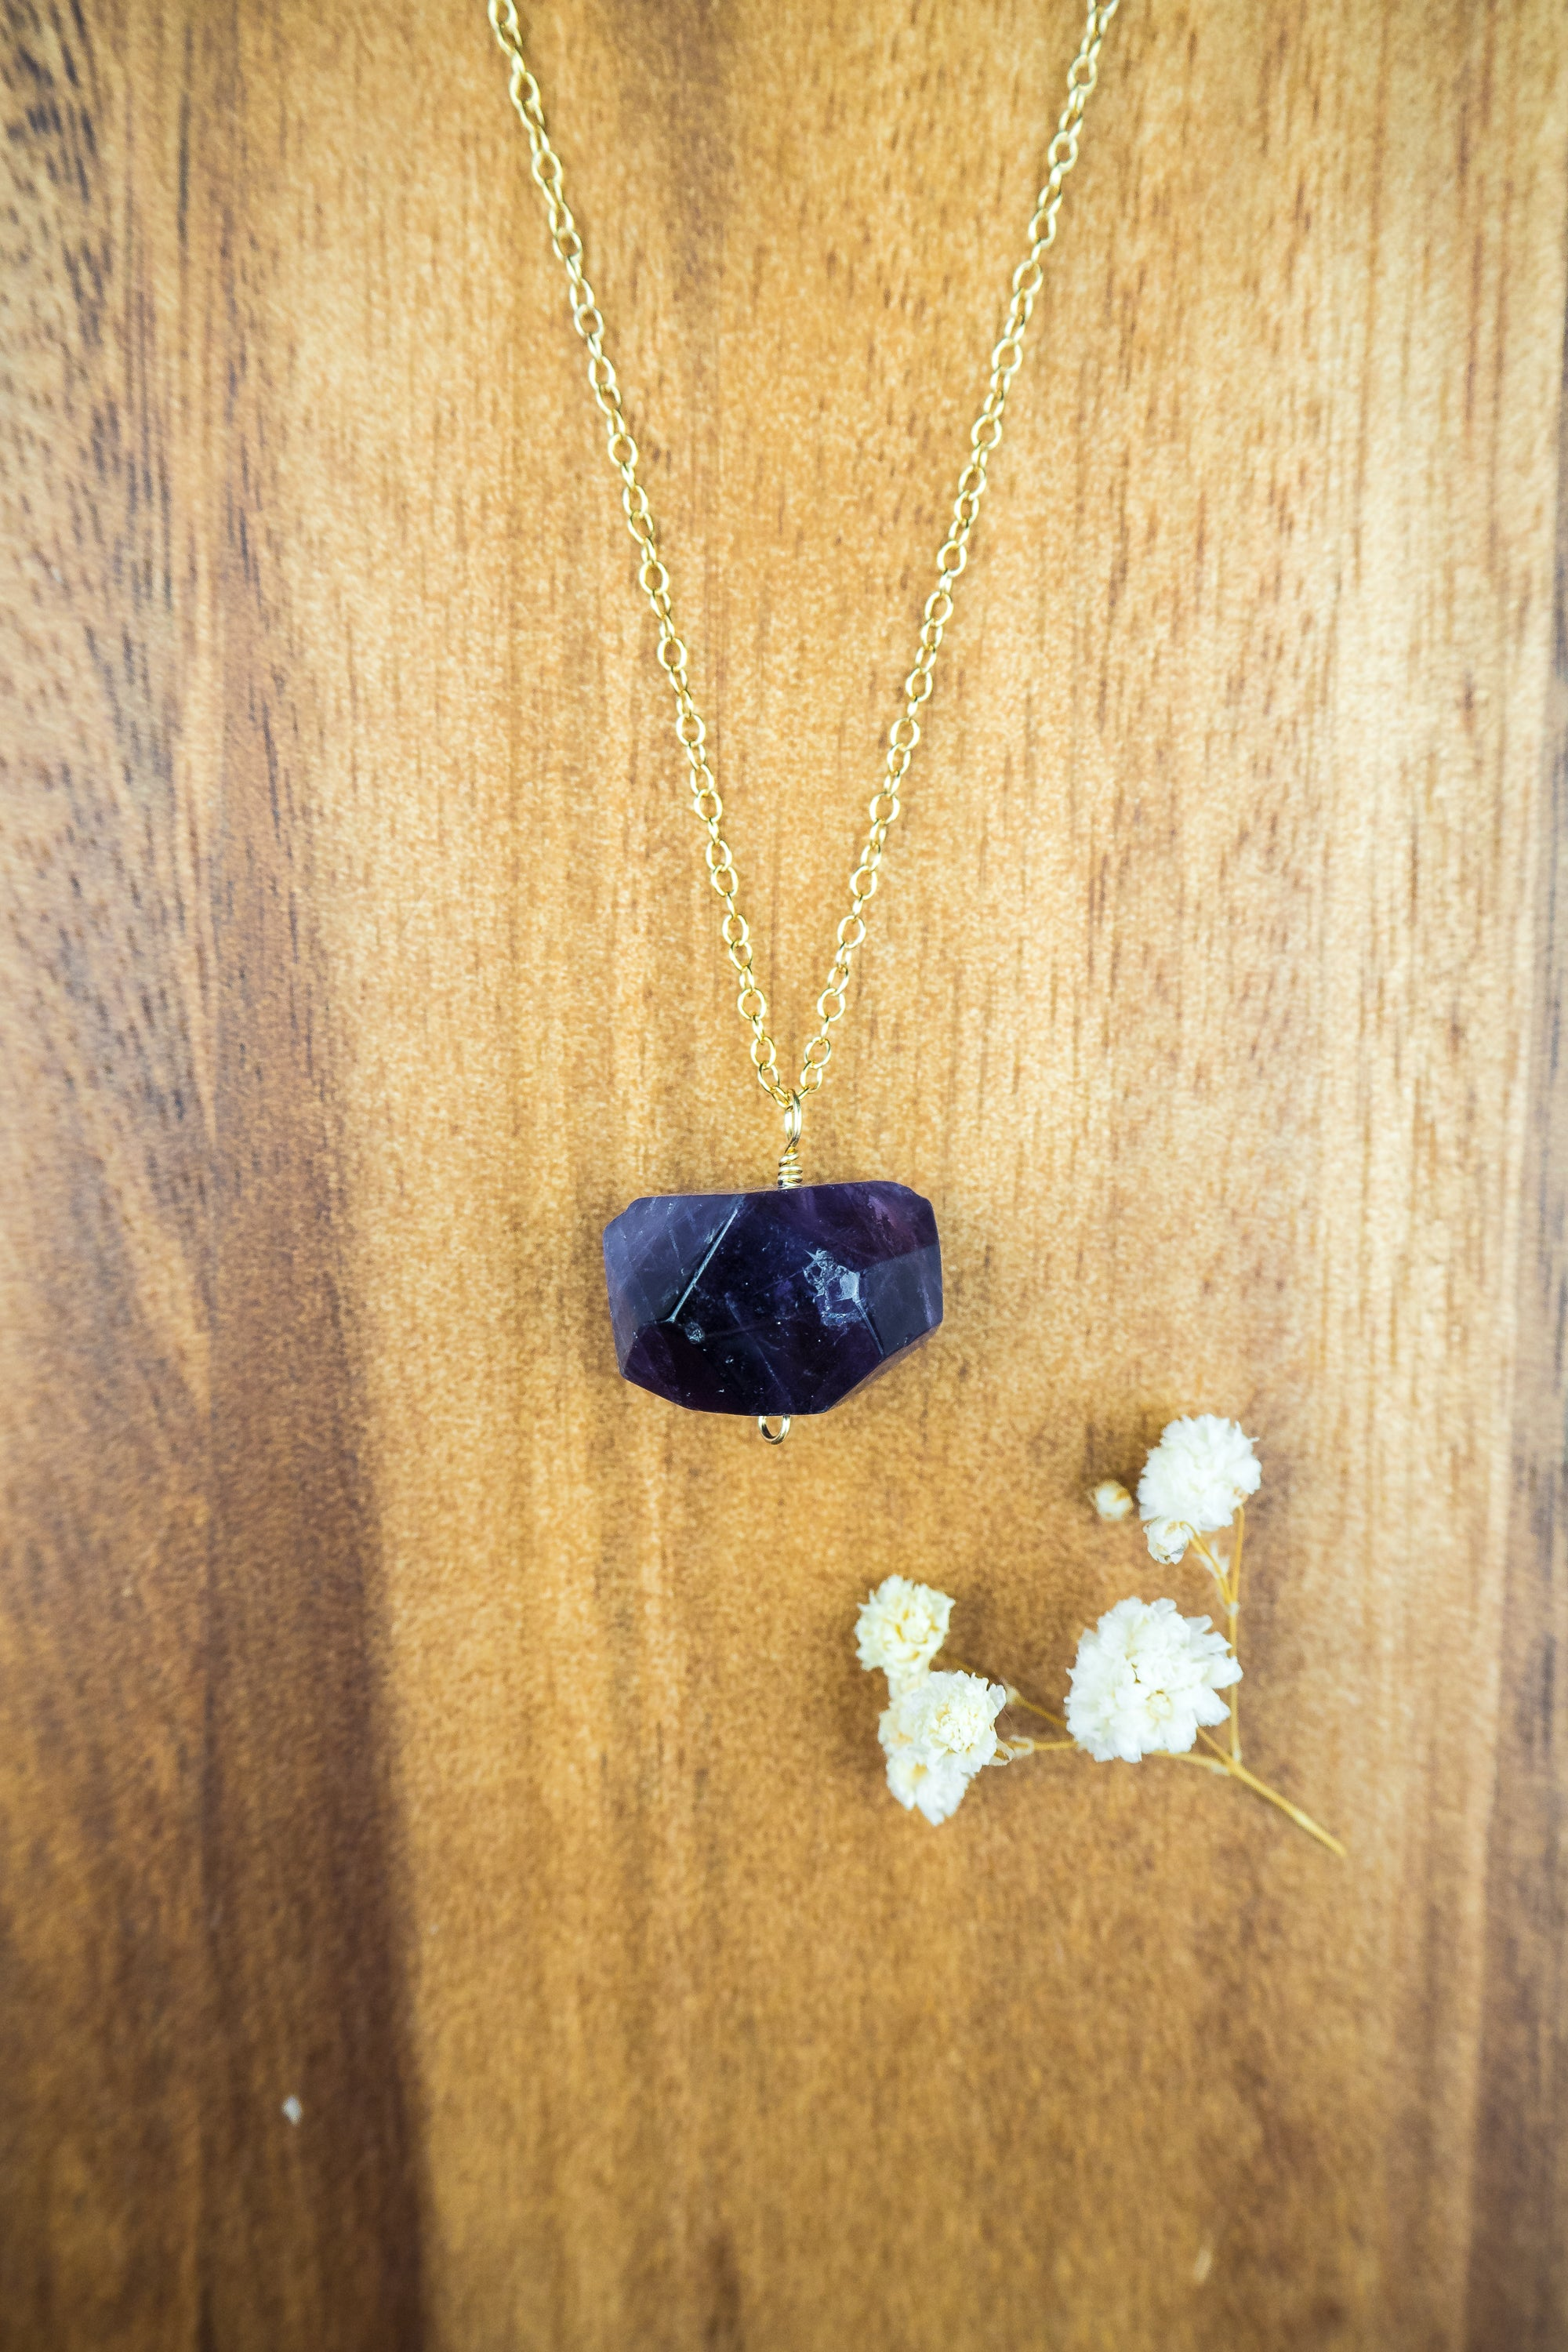 Chunky Dark Amethyst Crystal Nugget Necklace - Luna Tide